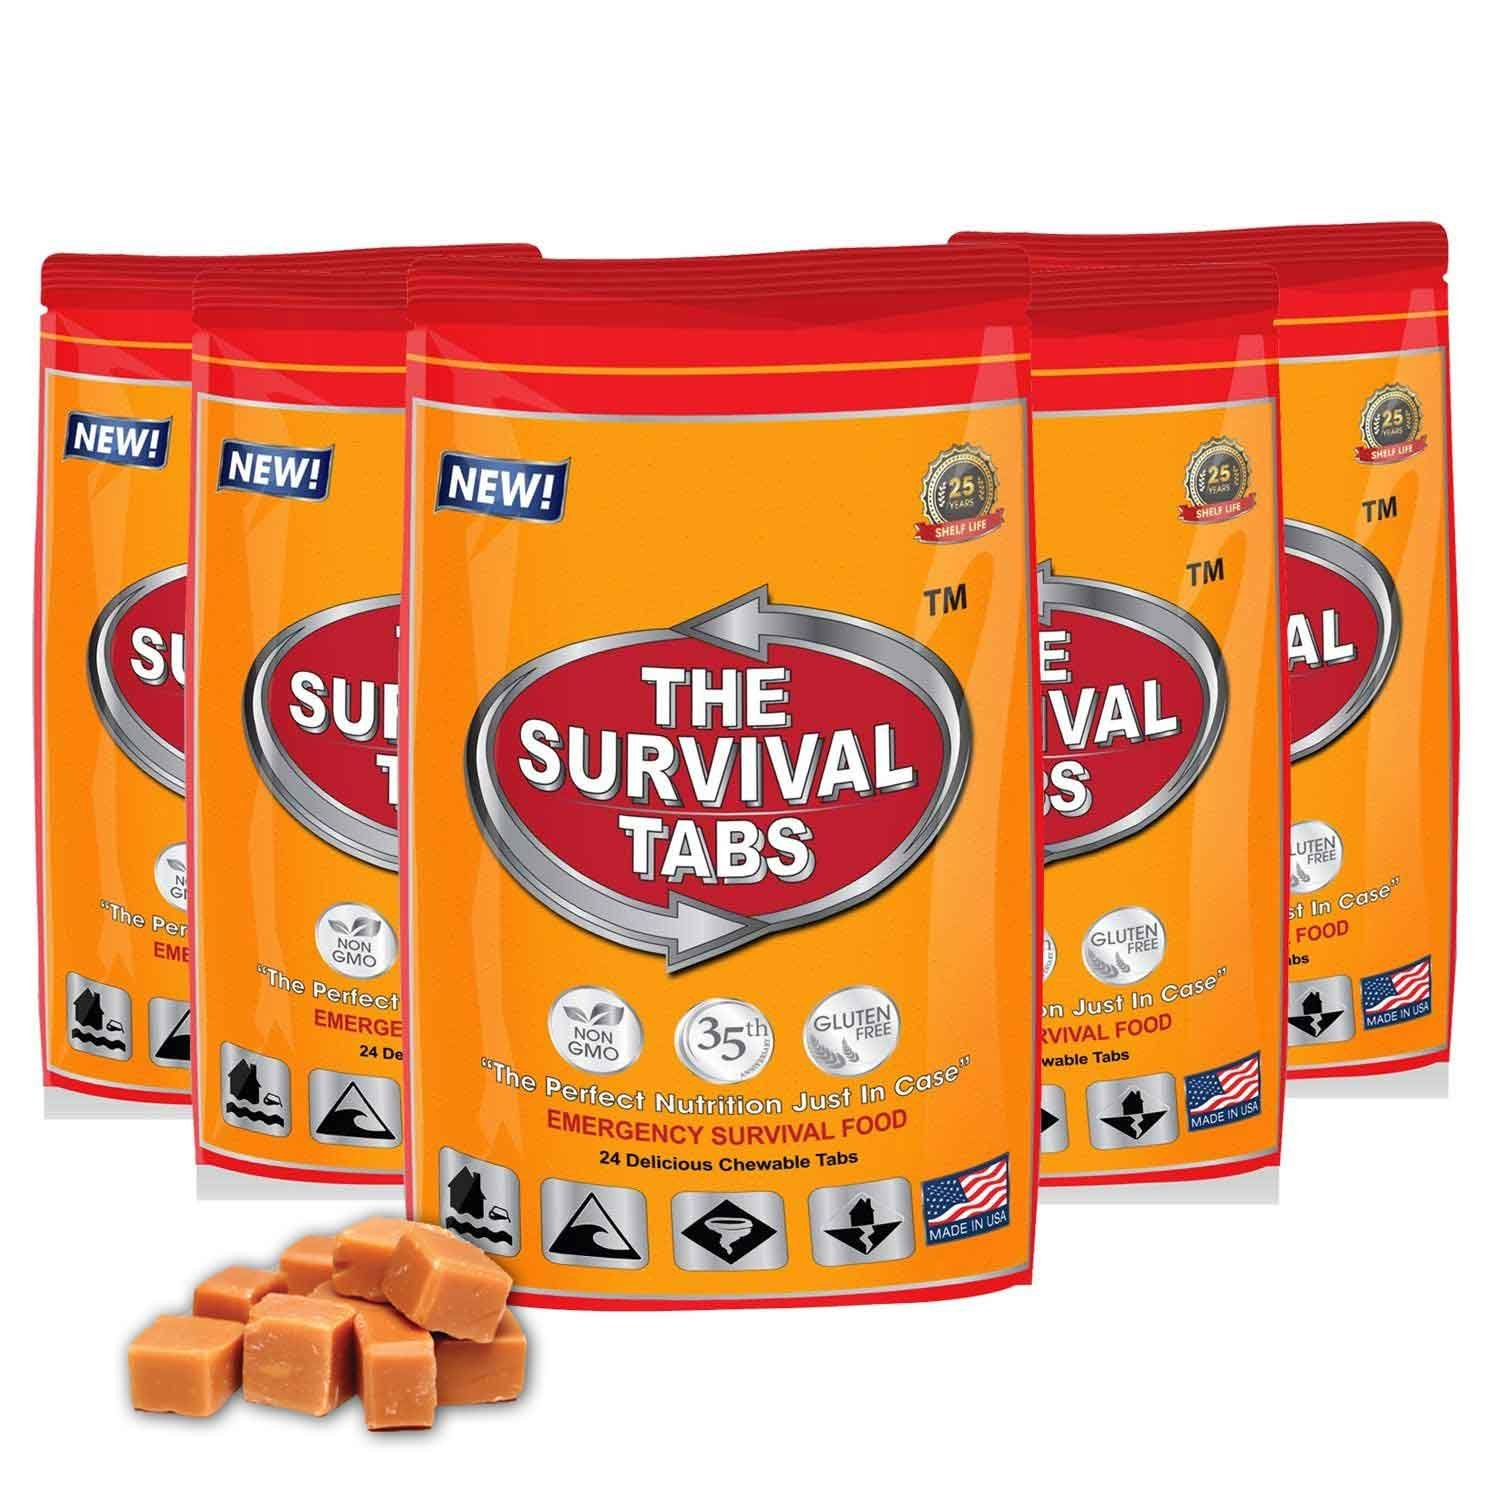 10-Day Snack Food - Emergency Survival Food MRE for Outdoor Activities Gluten-Free, Non-GMO 25 Years Shelf Life (5 pouches x 24 tablets = 120Tablets/Butterscotch) by The Survival Tabs